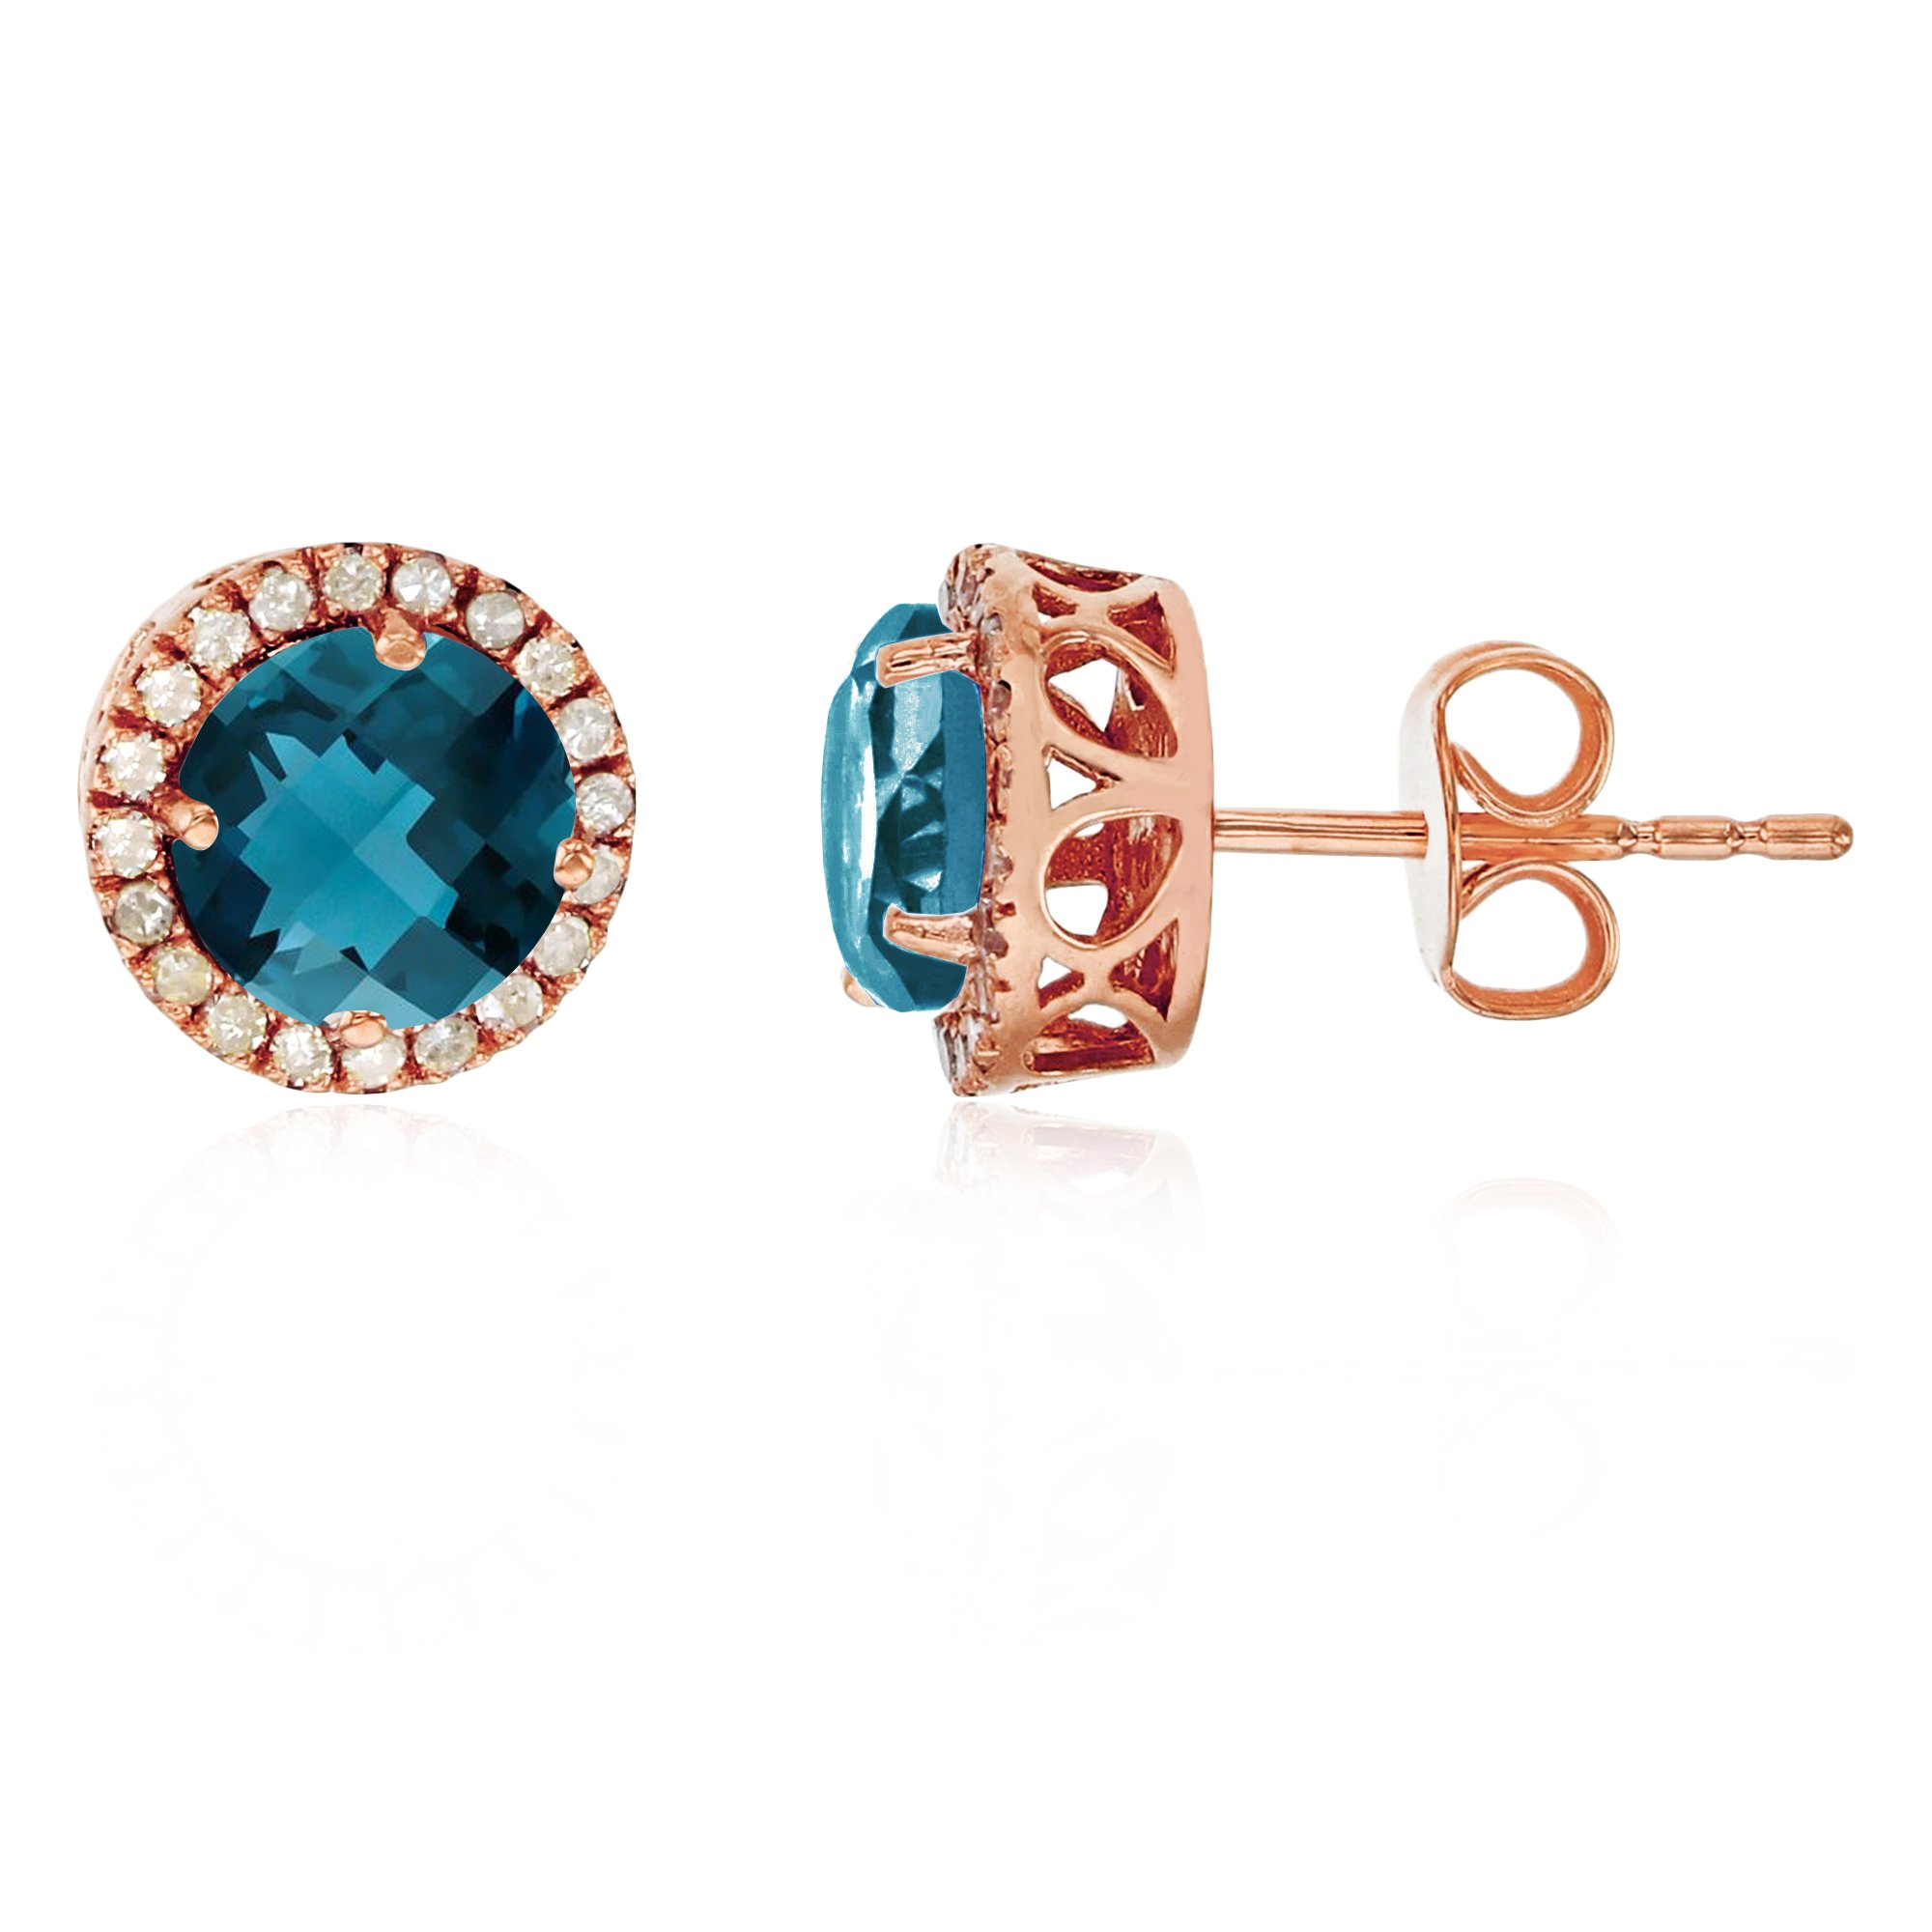 14K Rose Gold 6mm Round London Blue Topaz & 0.2 CTTW Diamond Halo Stud Earring